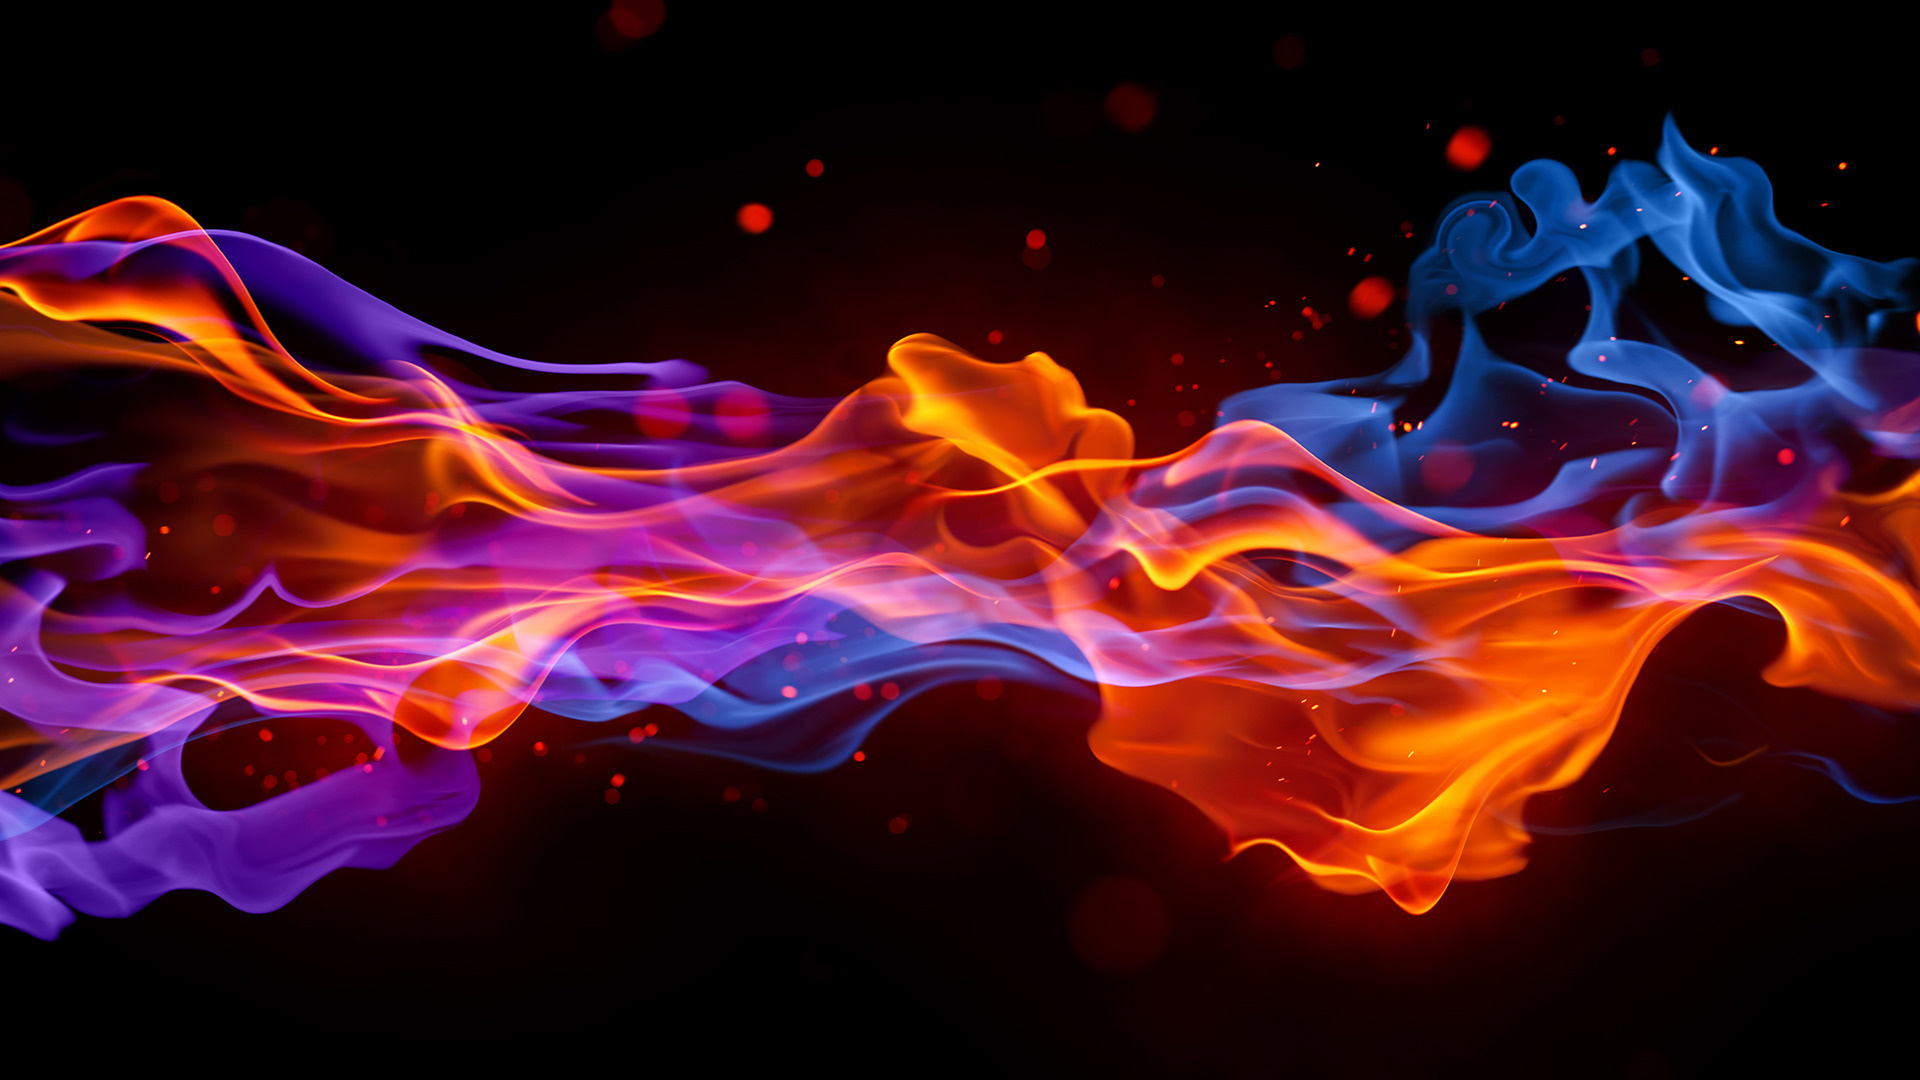 3d Cg Digital Art Fire Flames Colors Bright Rainbow Art Artistic